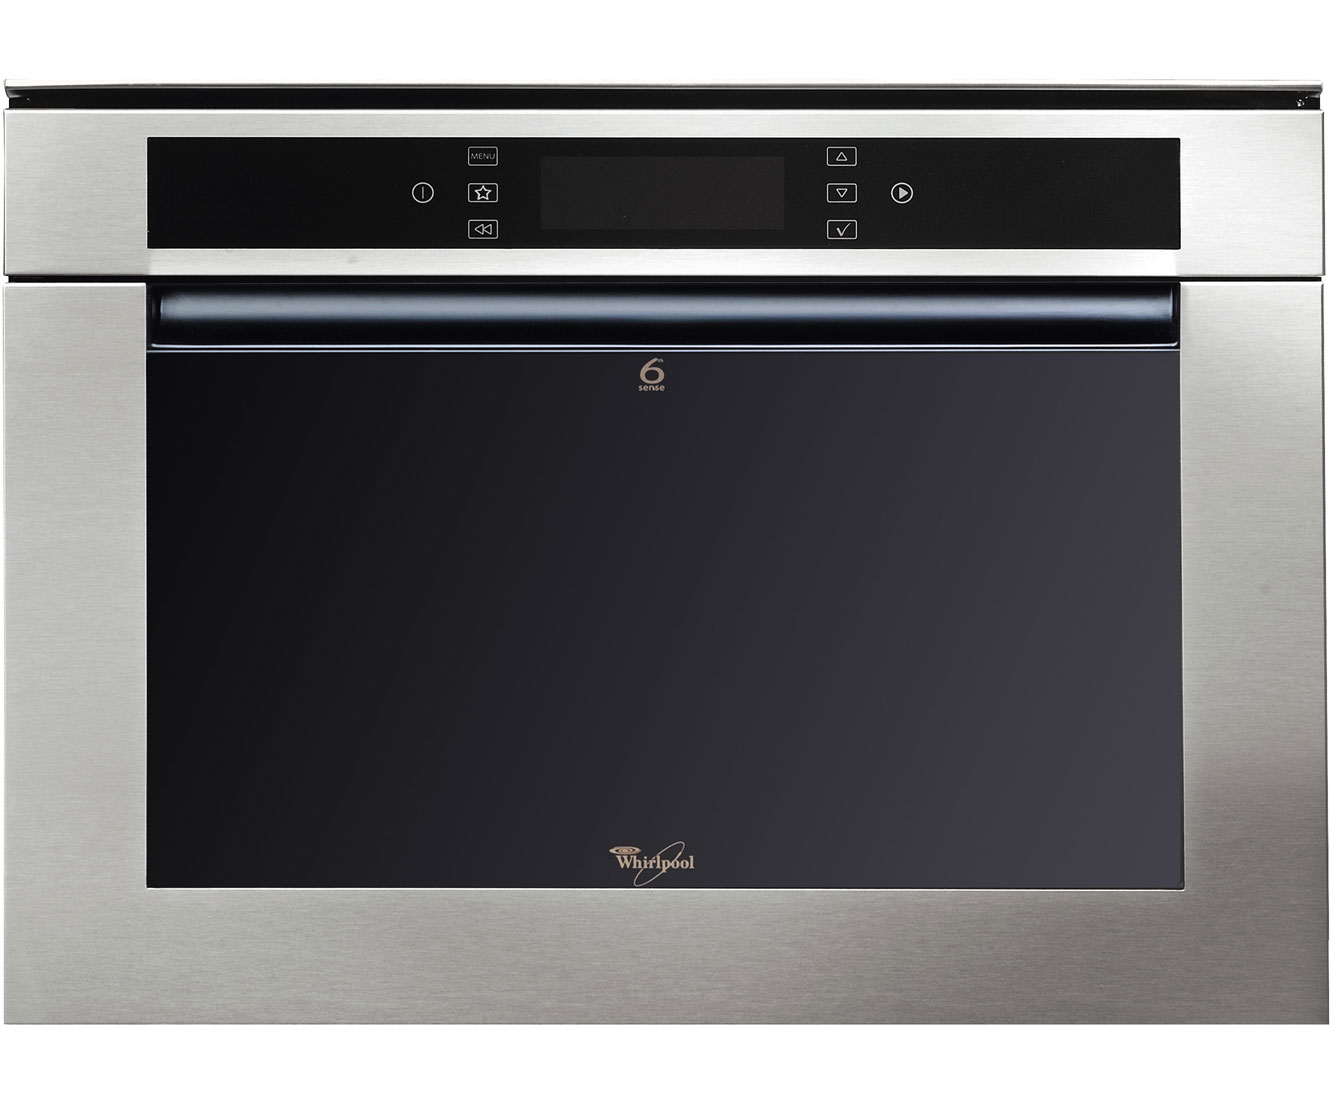 Whirlpool Fusion Perfect Chef AMW848/IX Built In Combination Microwave Oven - Stainless Steel